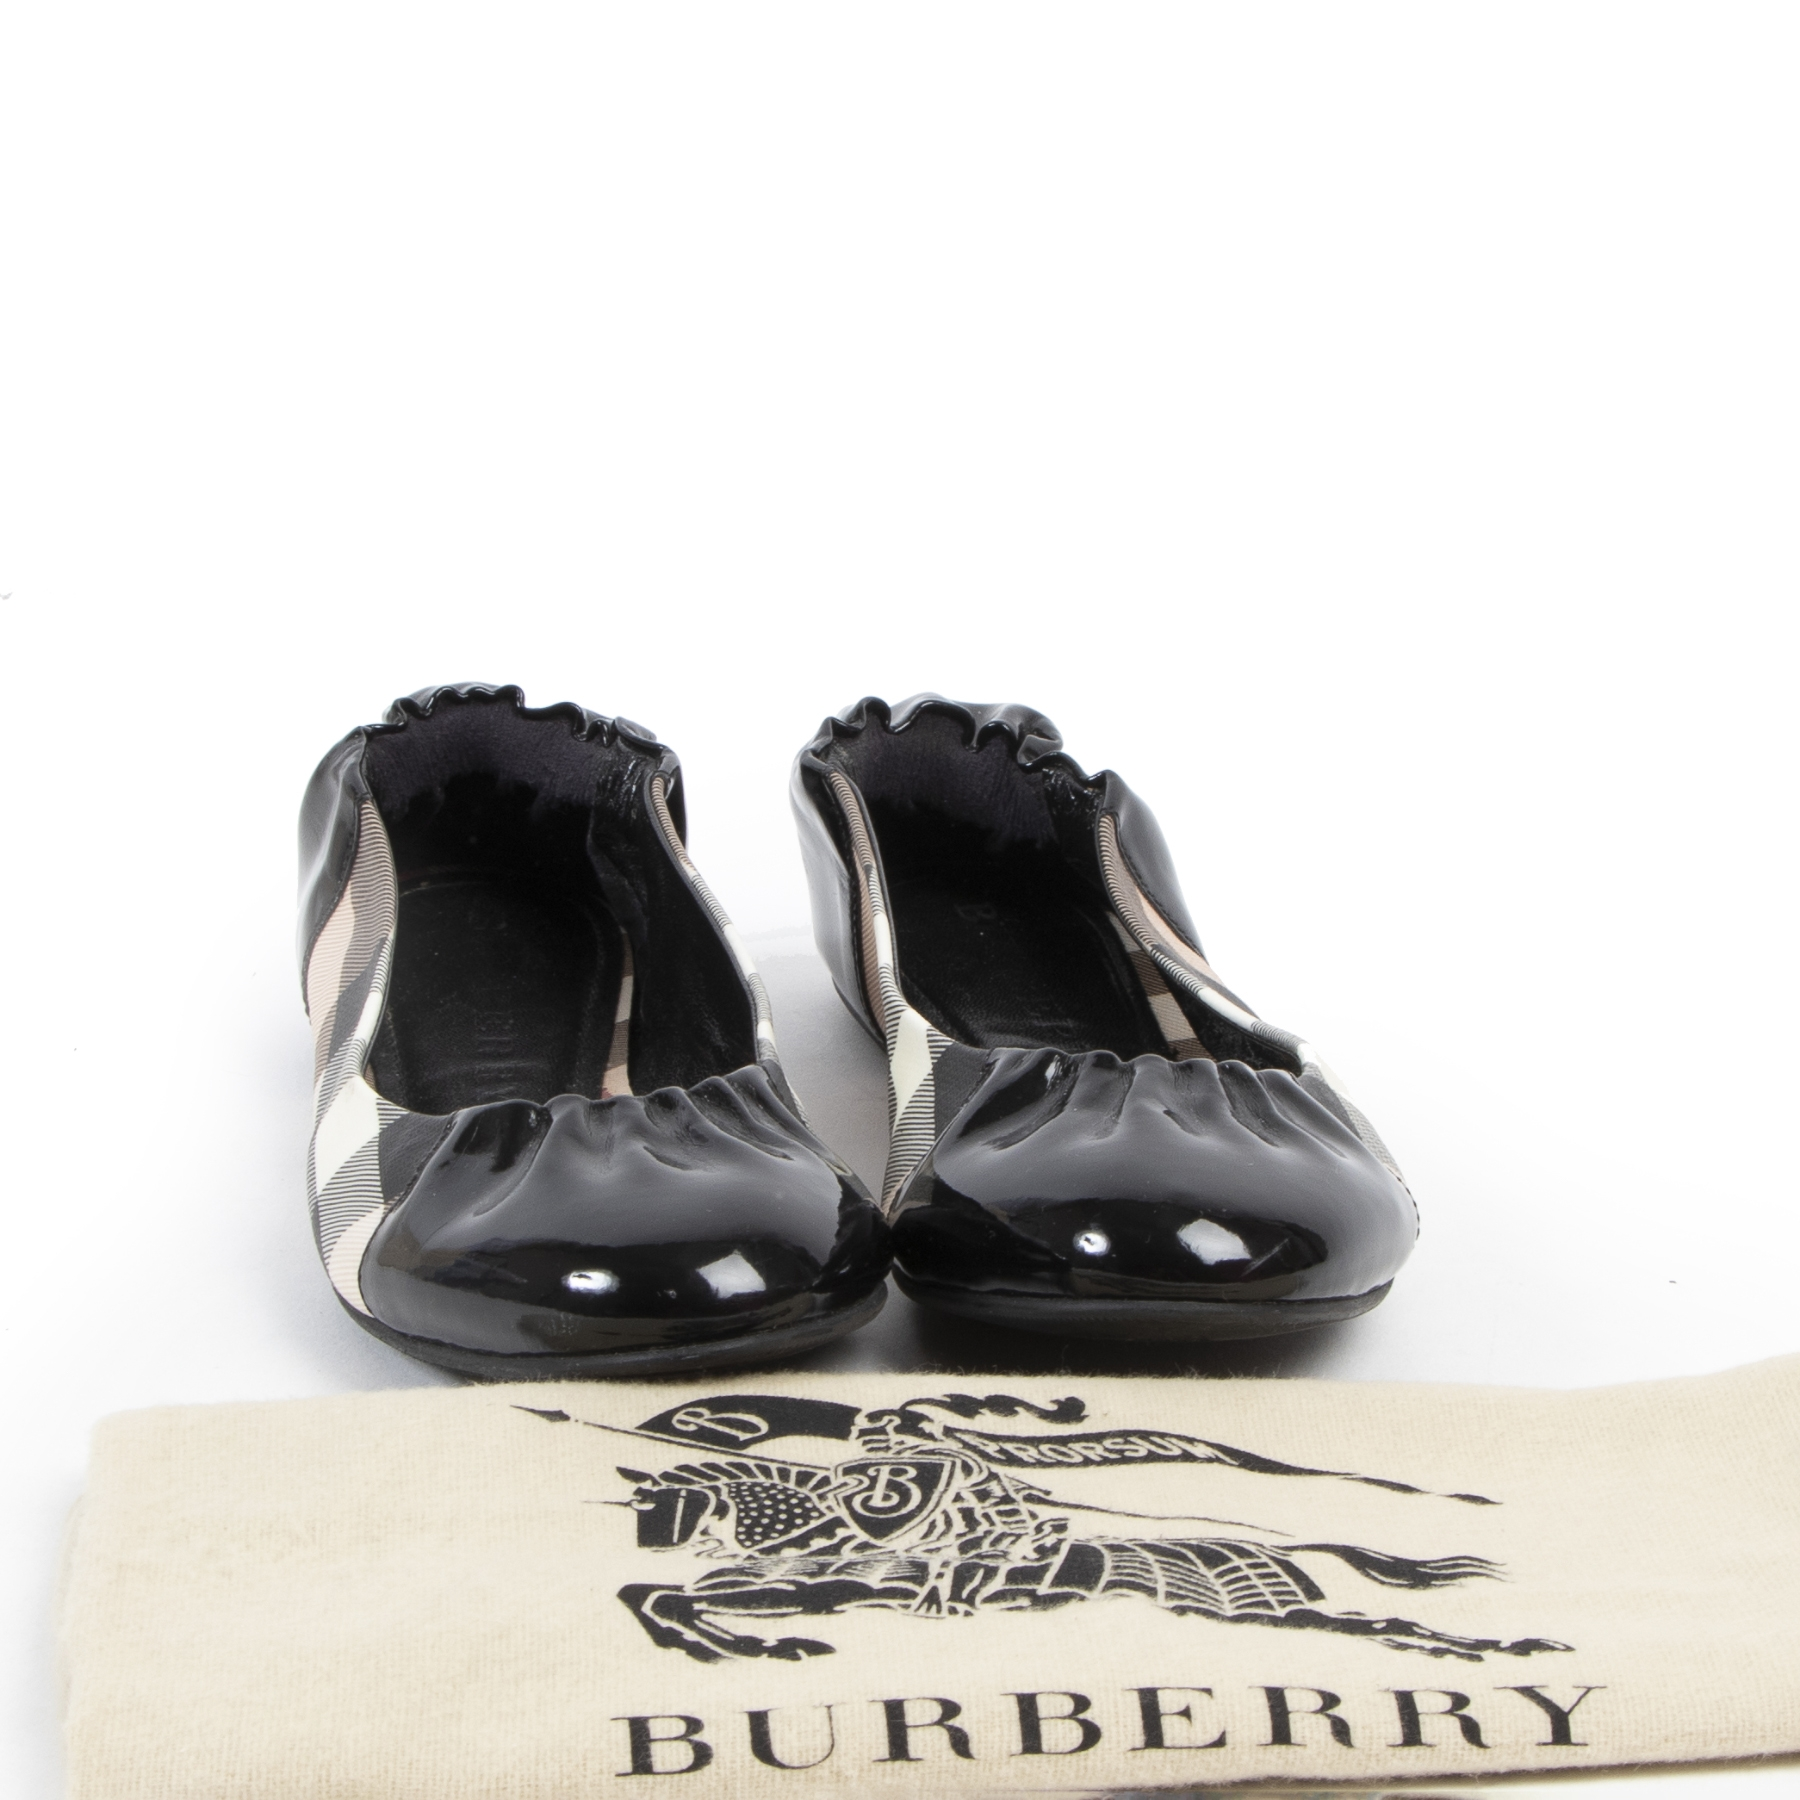 Buy authentic used Burberry Shoes with right price at LabelLOV.